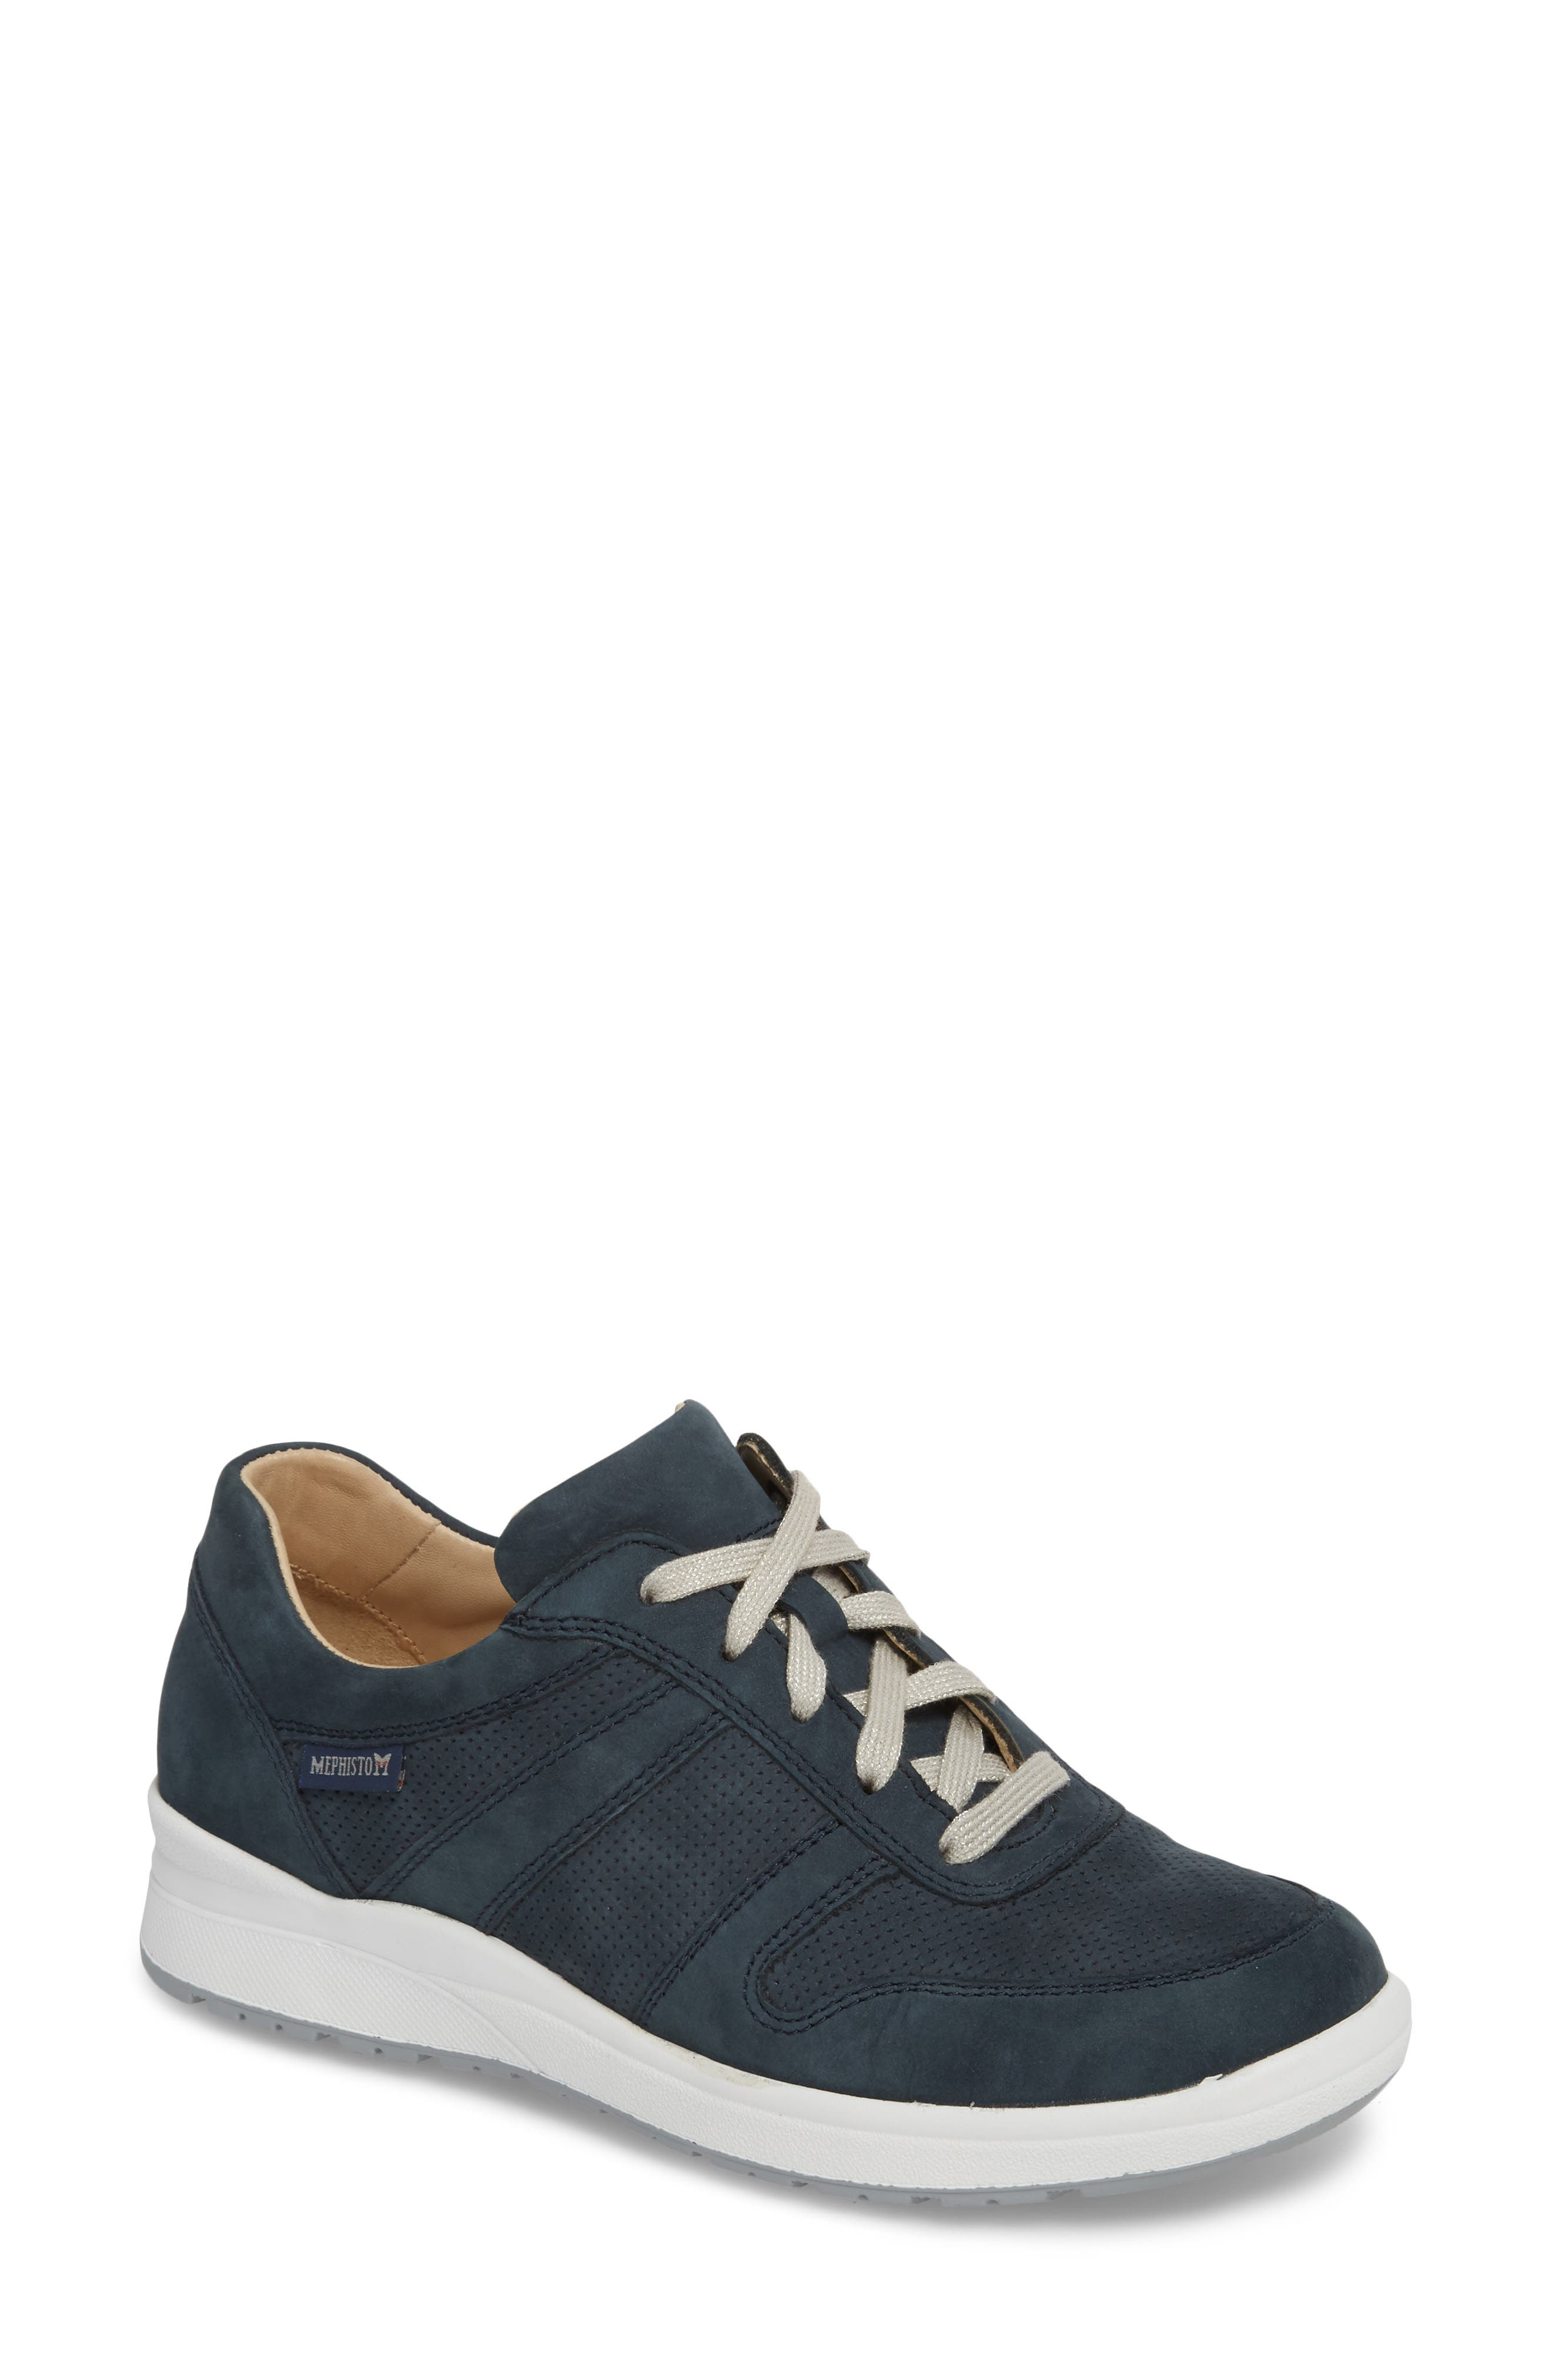 Mephisto Rebecca Perforated Sneaker (Women)